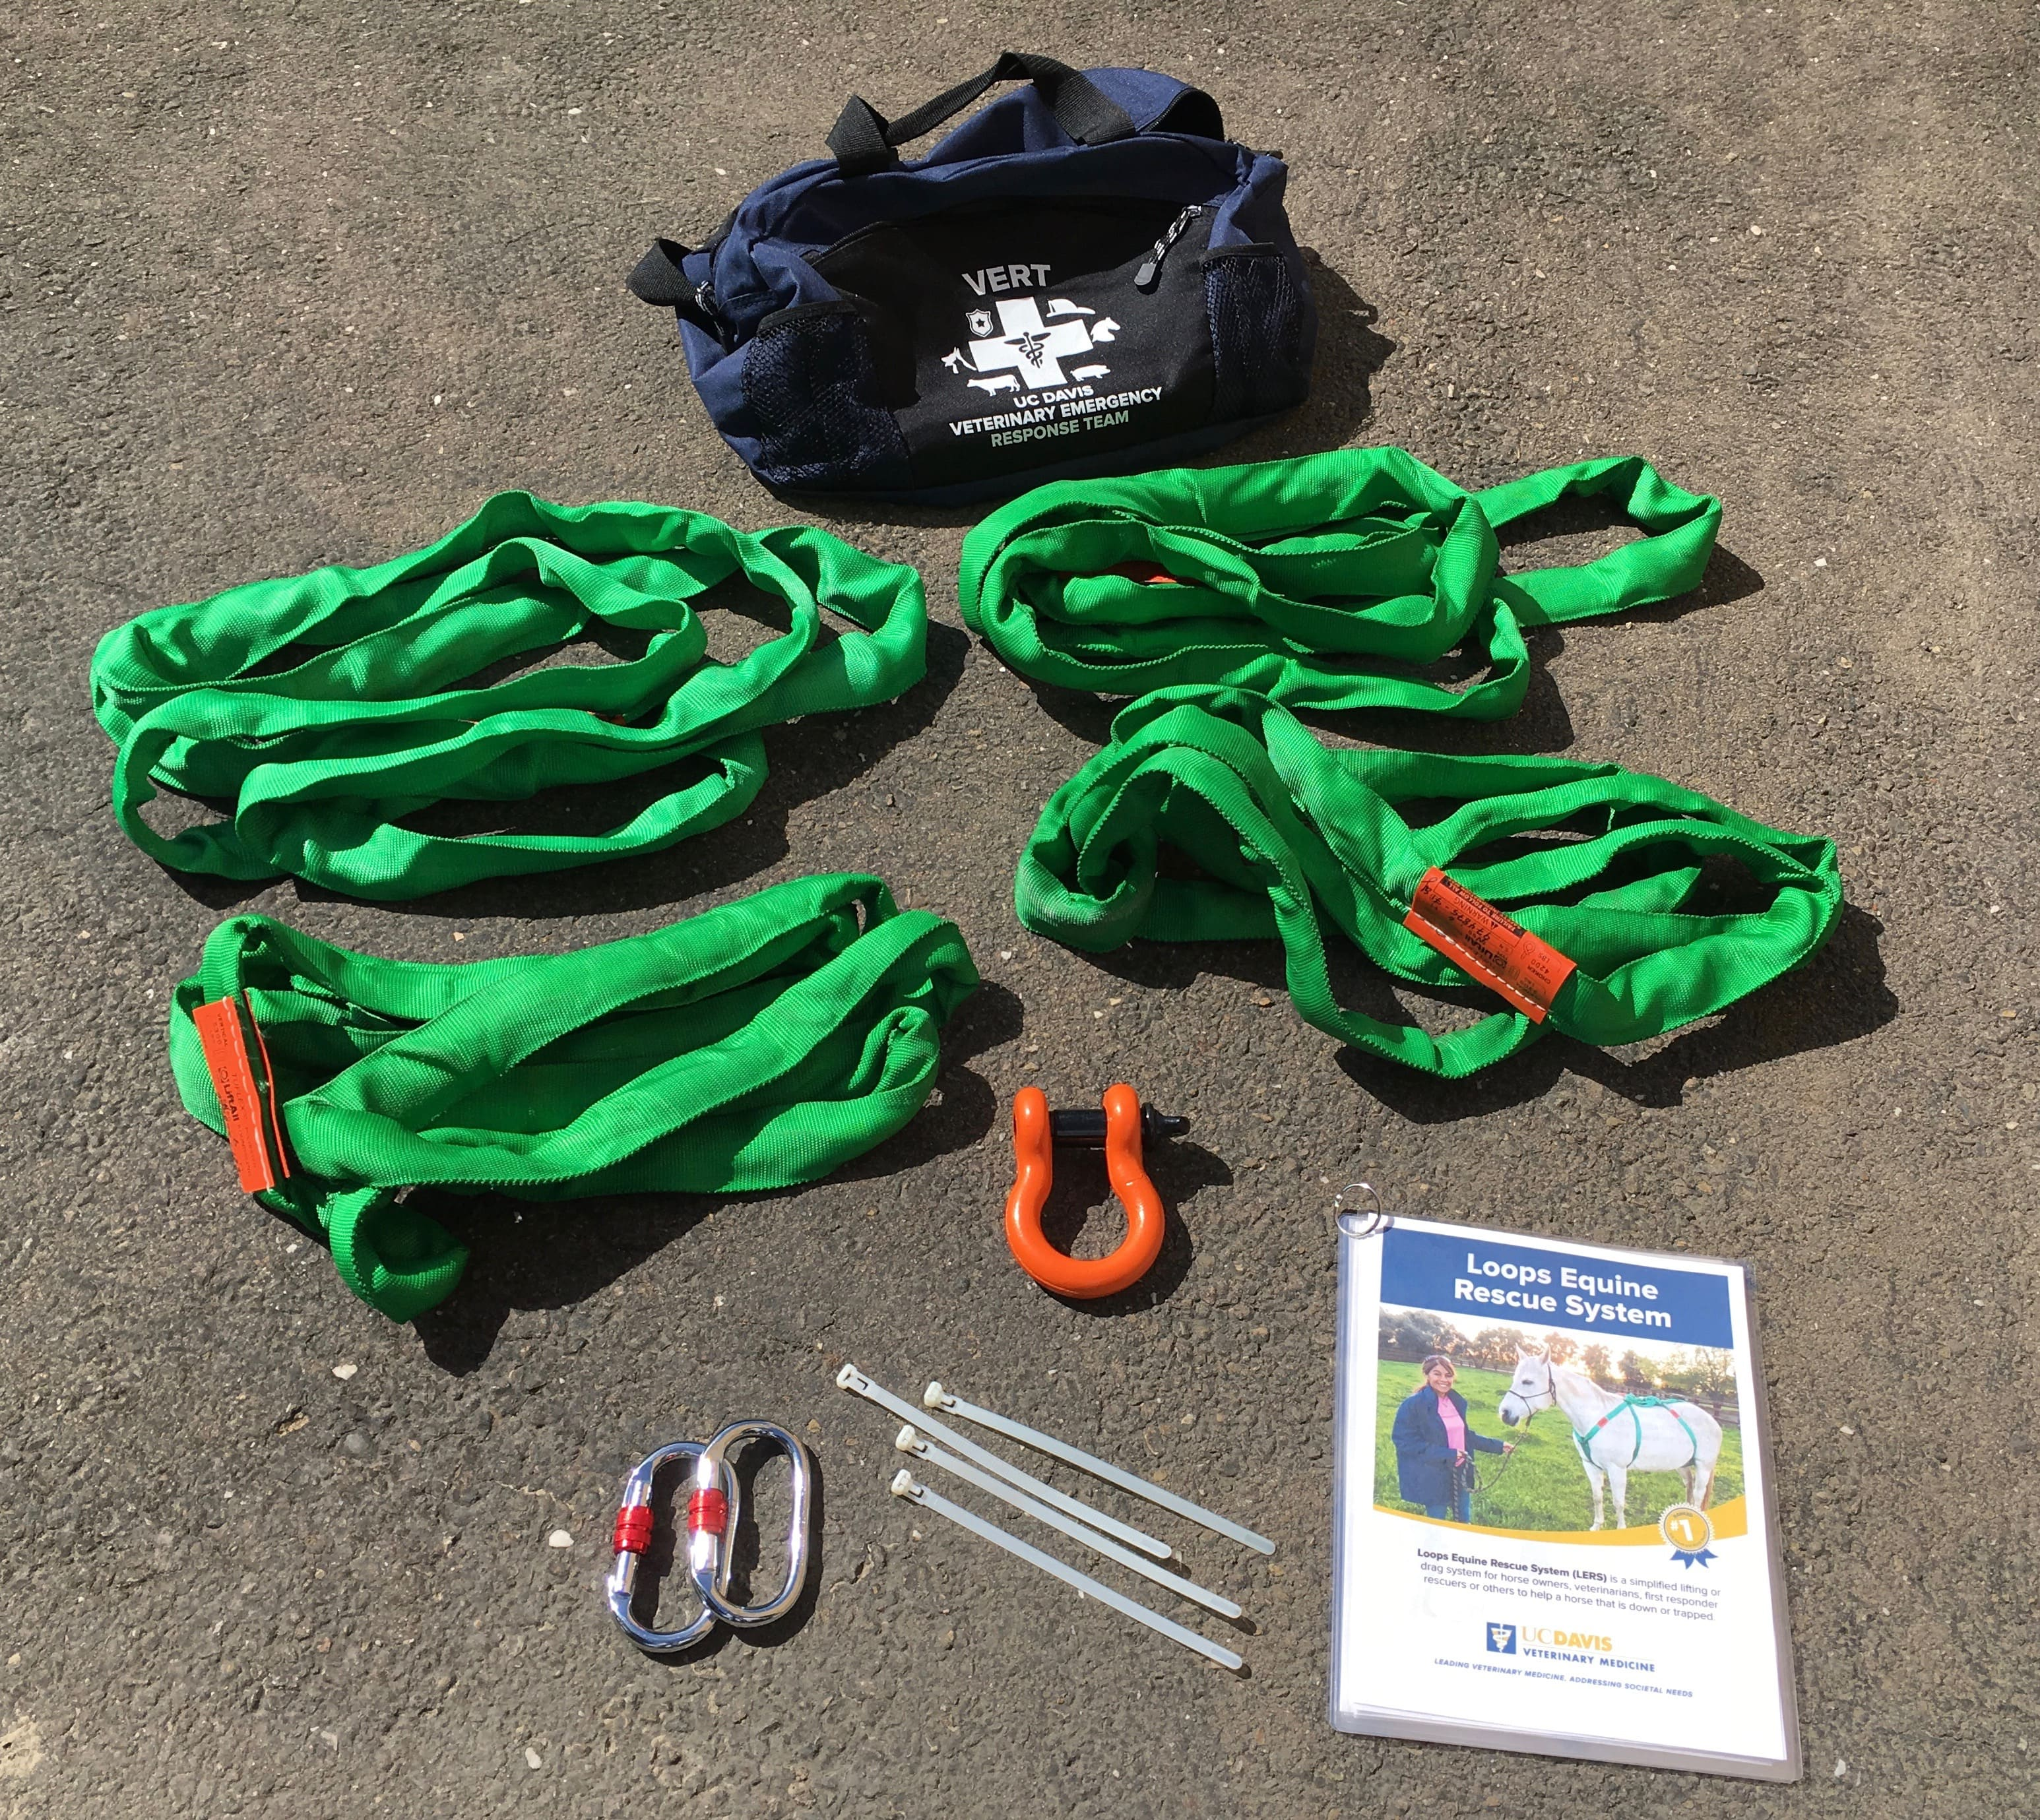 Contents of Loops Equine Rescue System